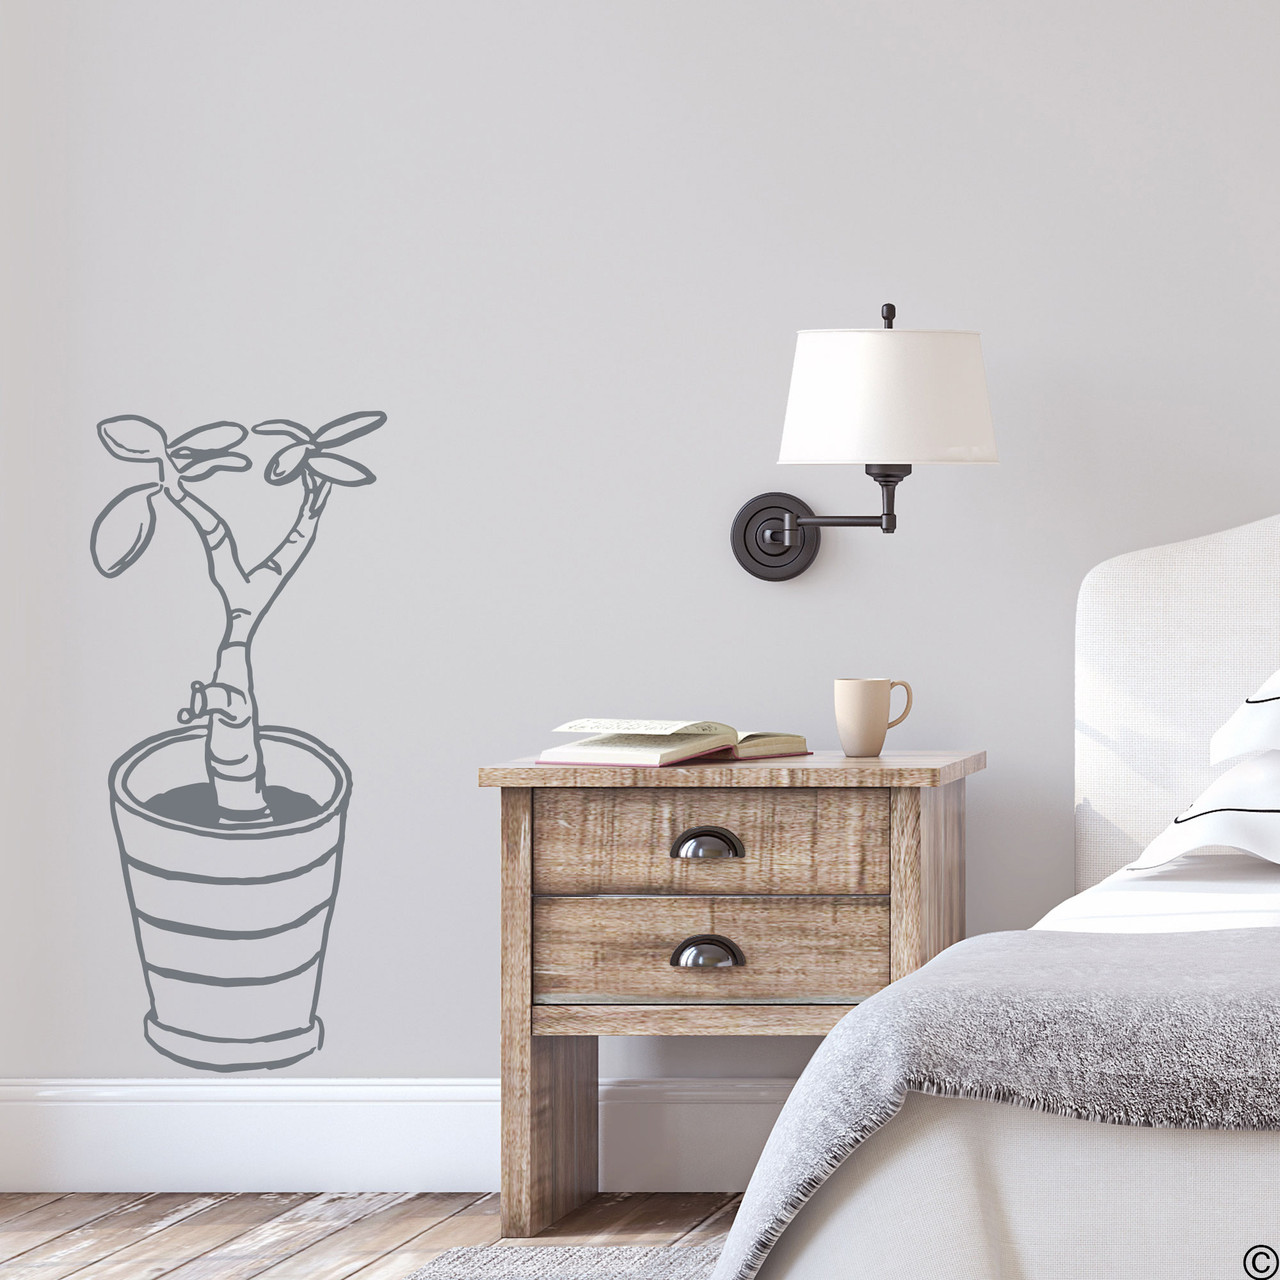 The hand drawn baby jade potted plant wall decal in the storm grey vinyl color.